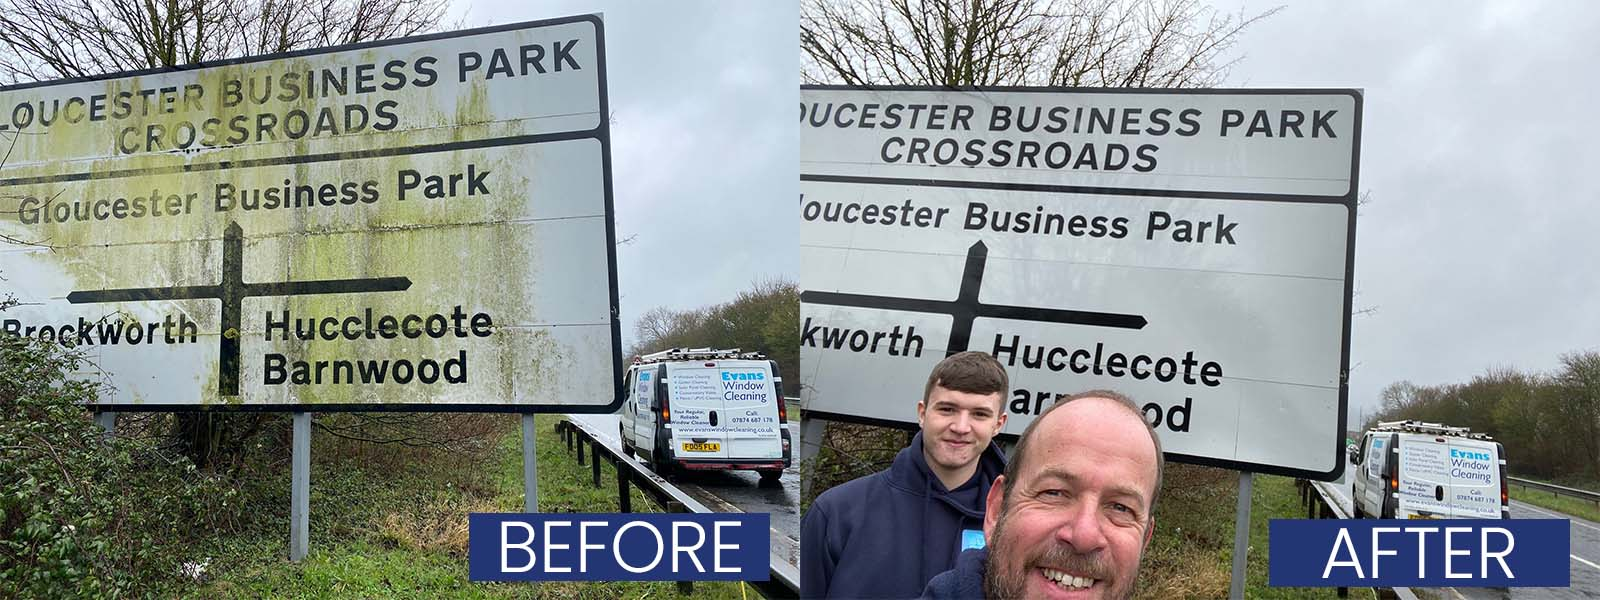 Before and after road signs